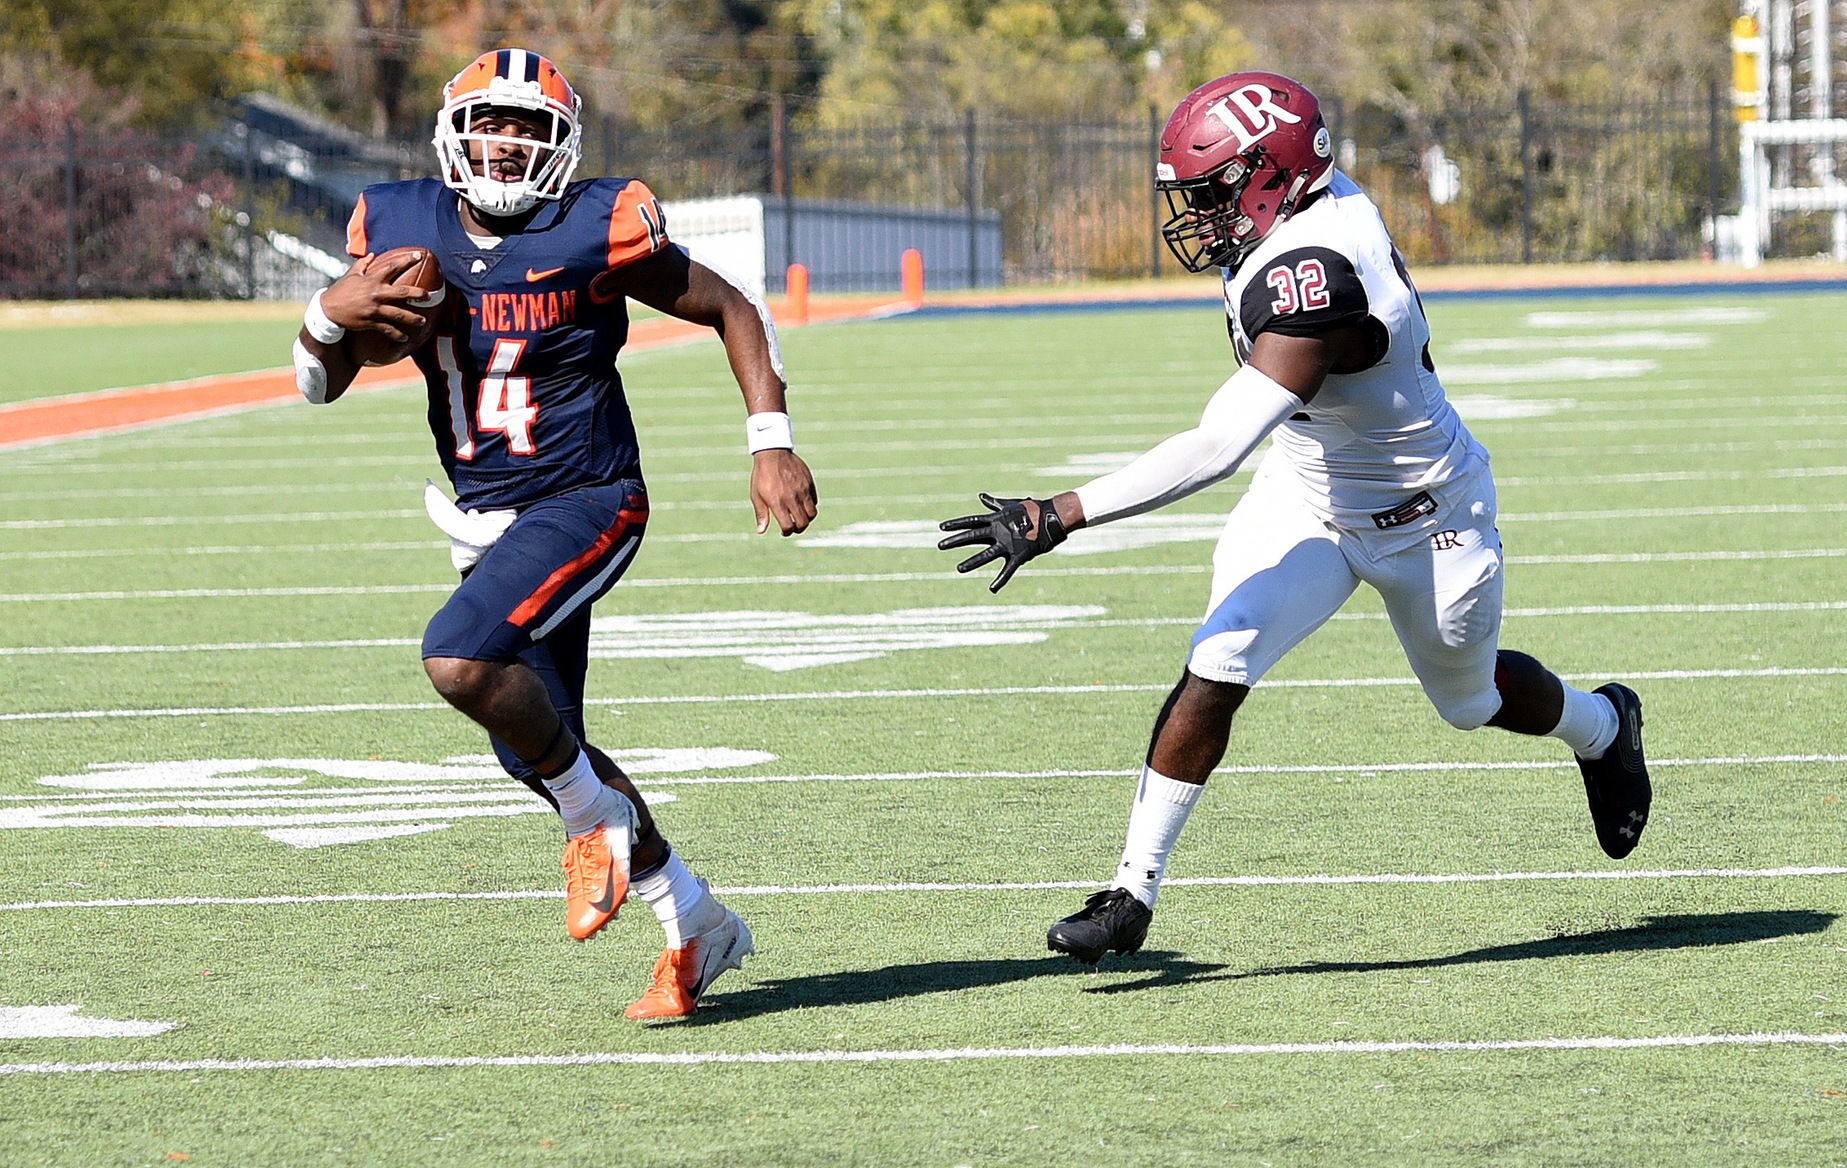 Turnovers undo Eagles in 41-20 loss to No. 21 Lenoir-Rhyne